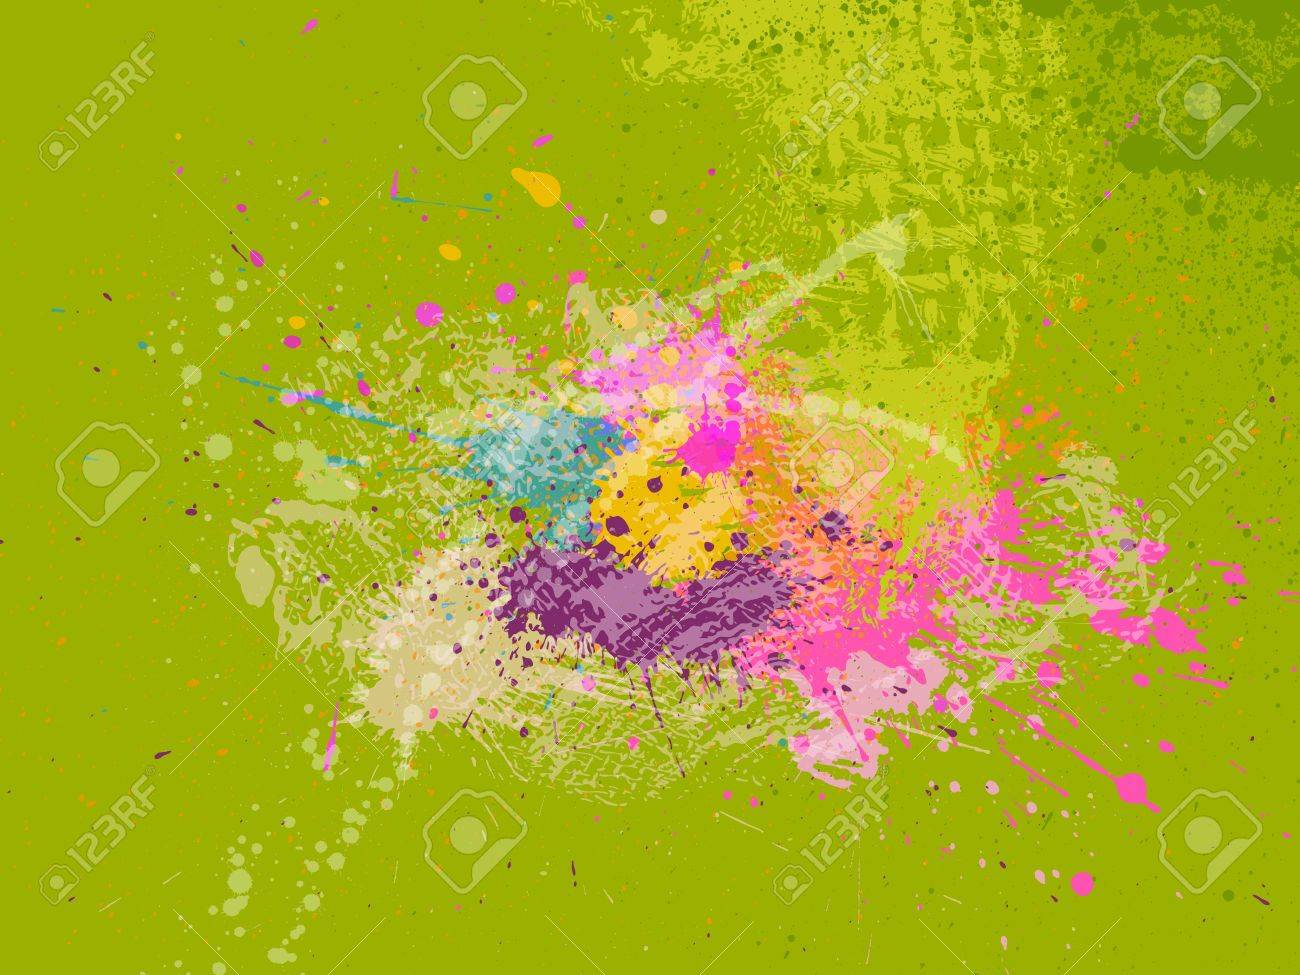 abstract grunge background, vector eps10 with transparency - 9344547